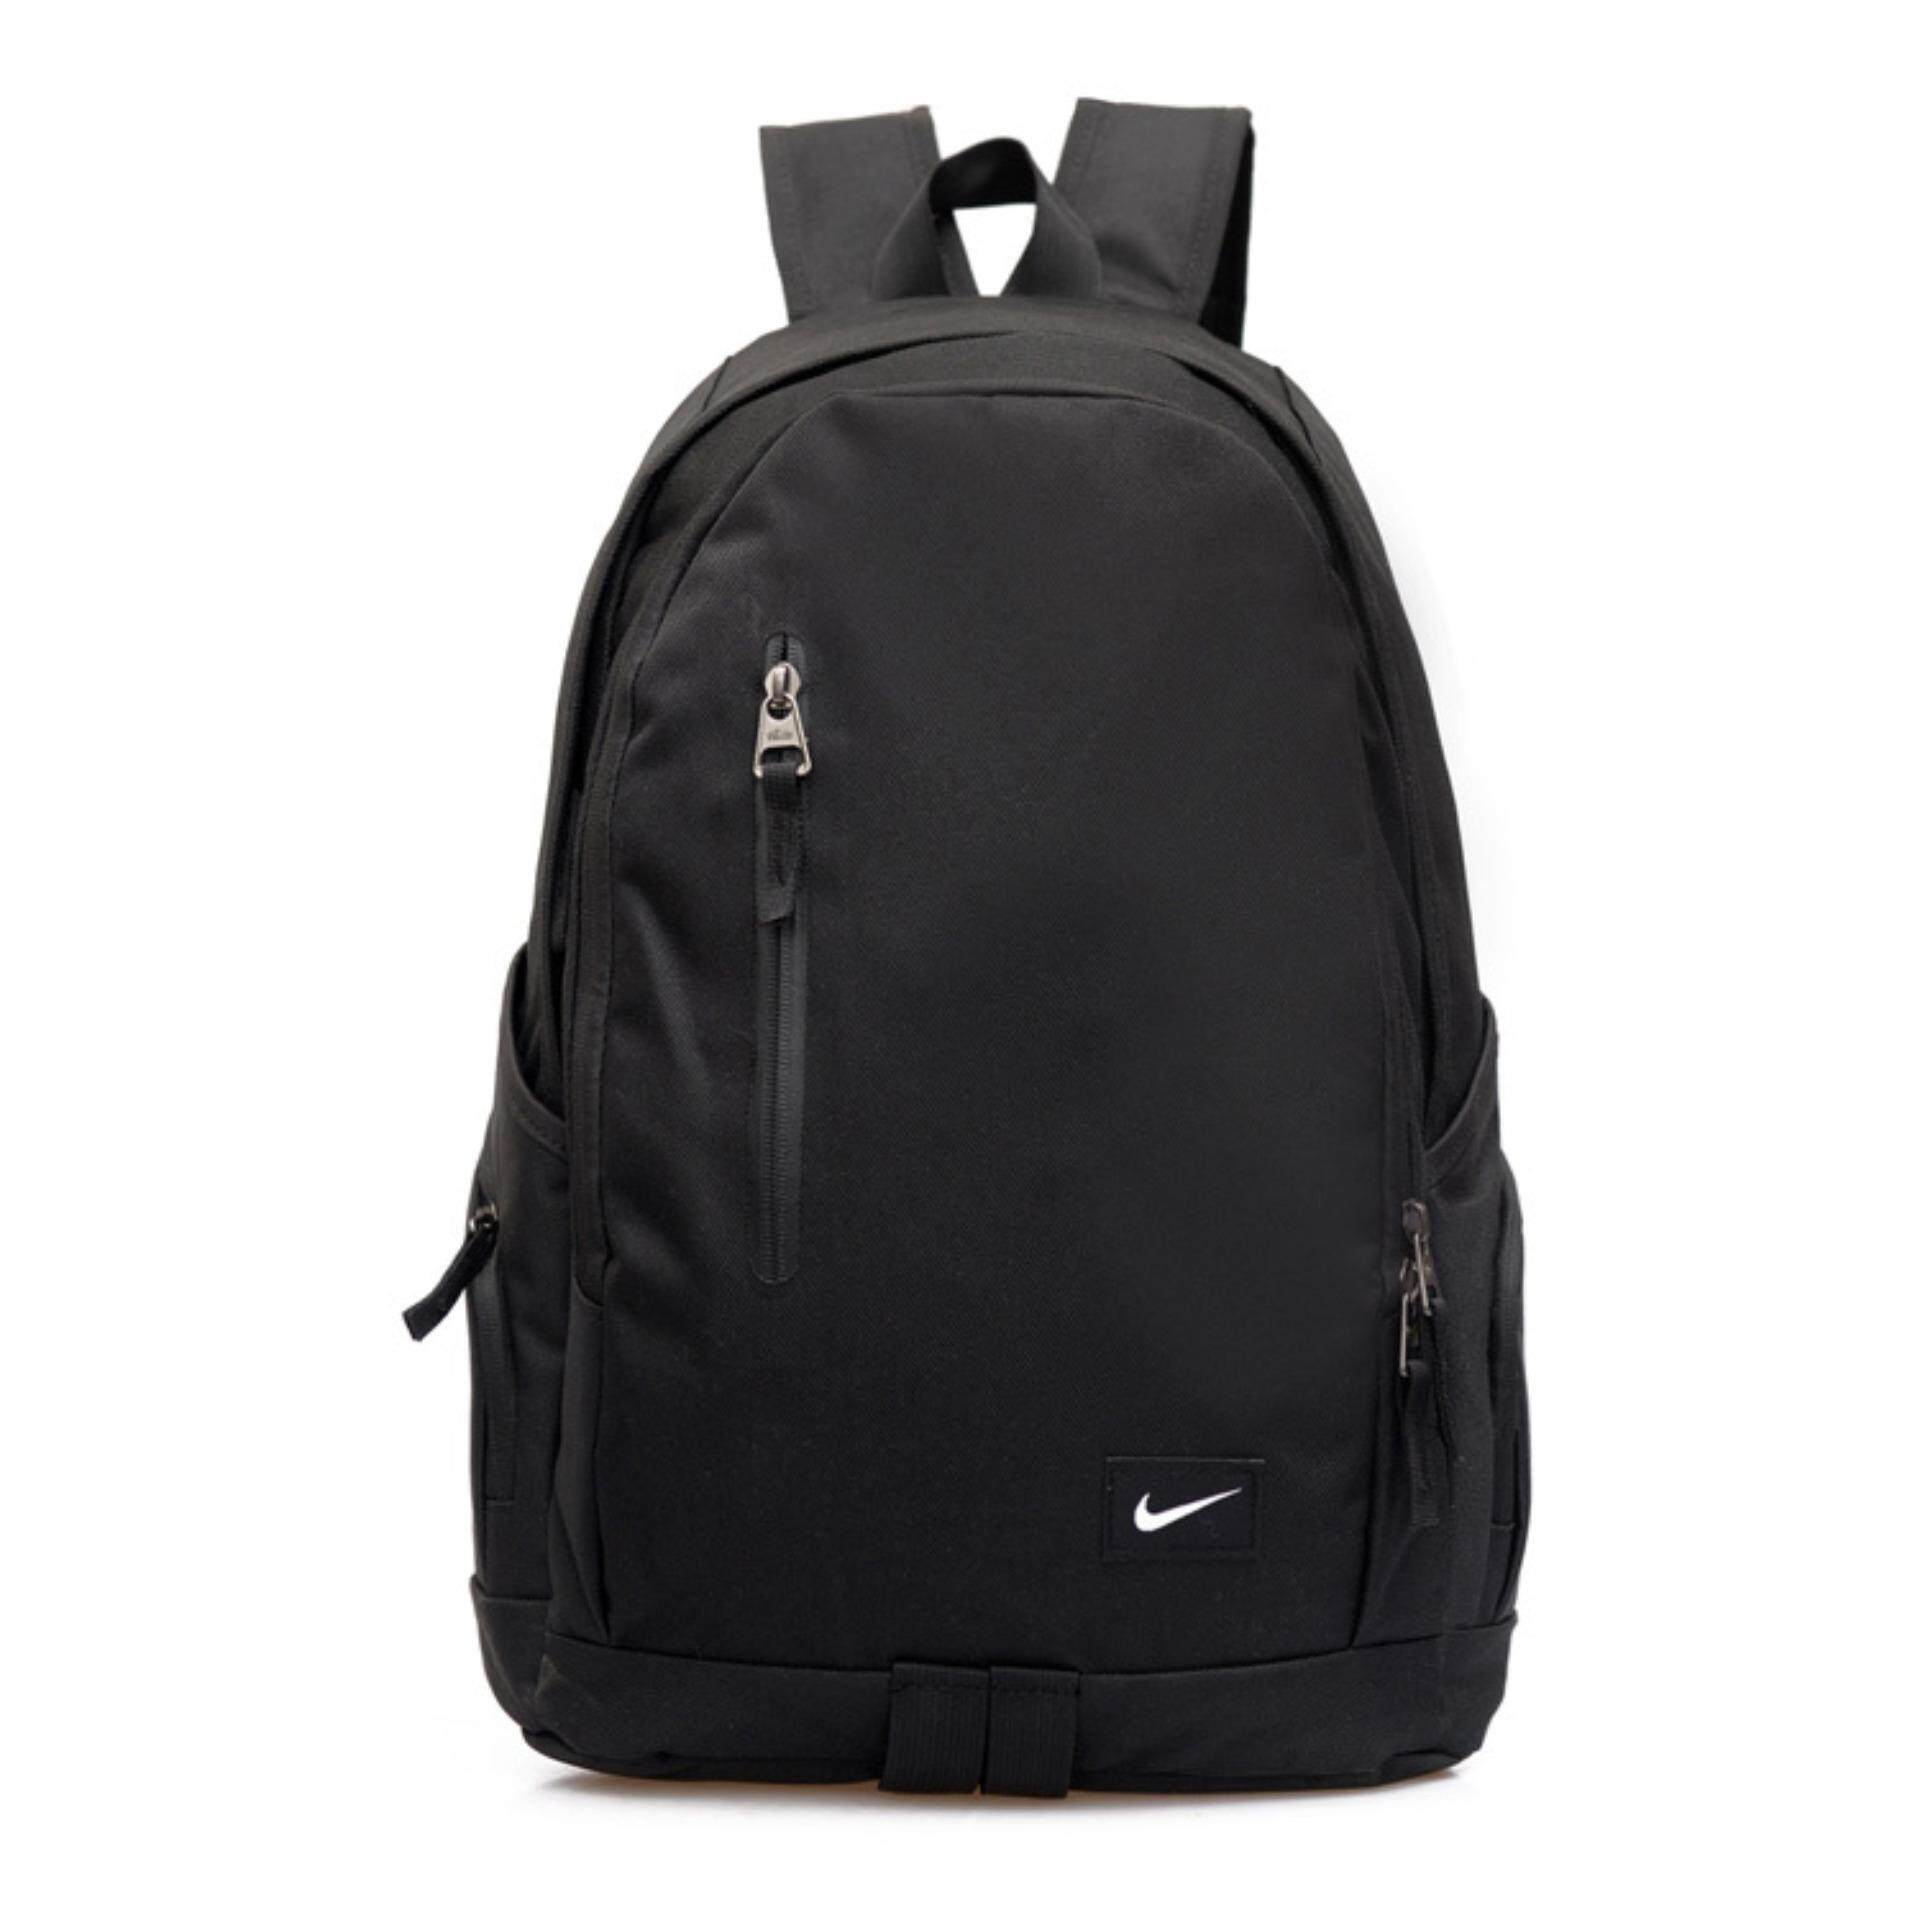 Nike Black Gold Backpack- Fenix Toulouse Handball b0b2ad91e0e7e